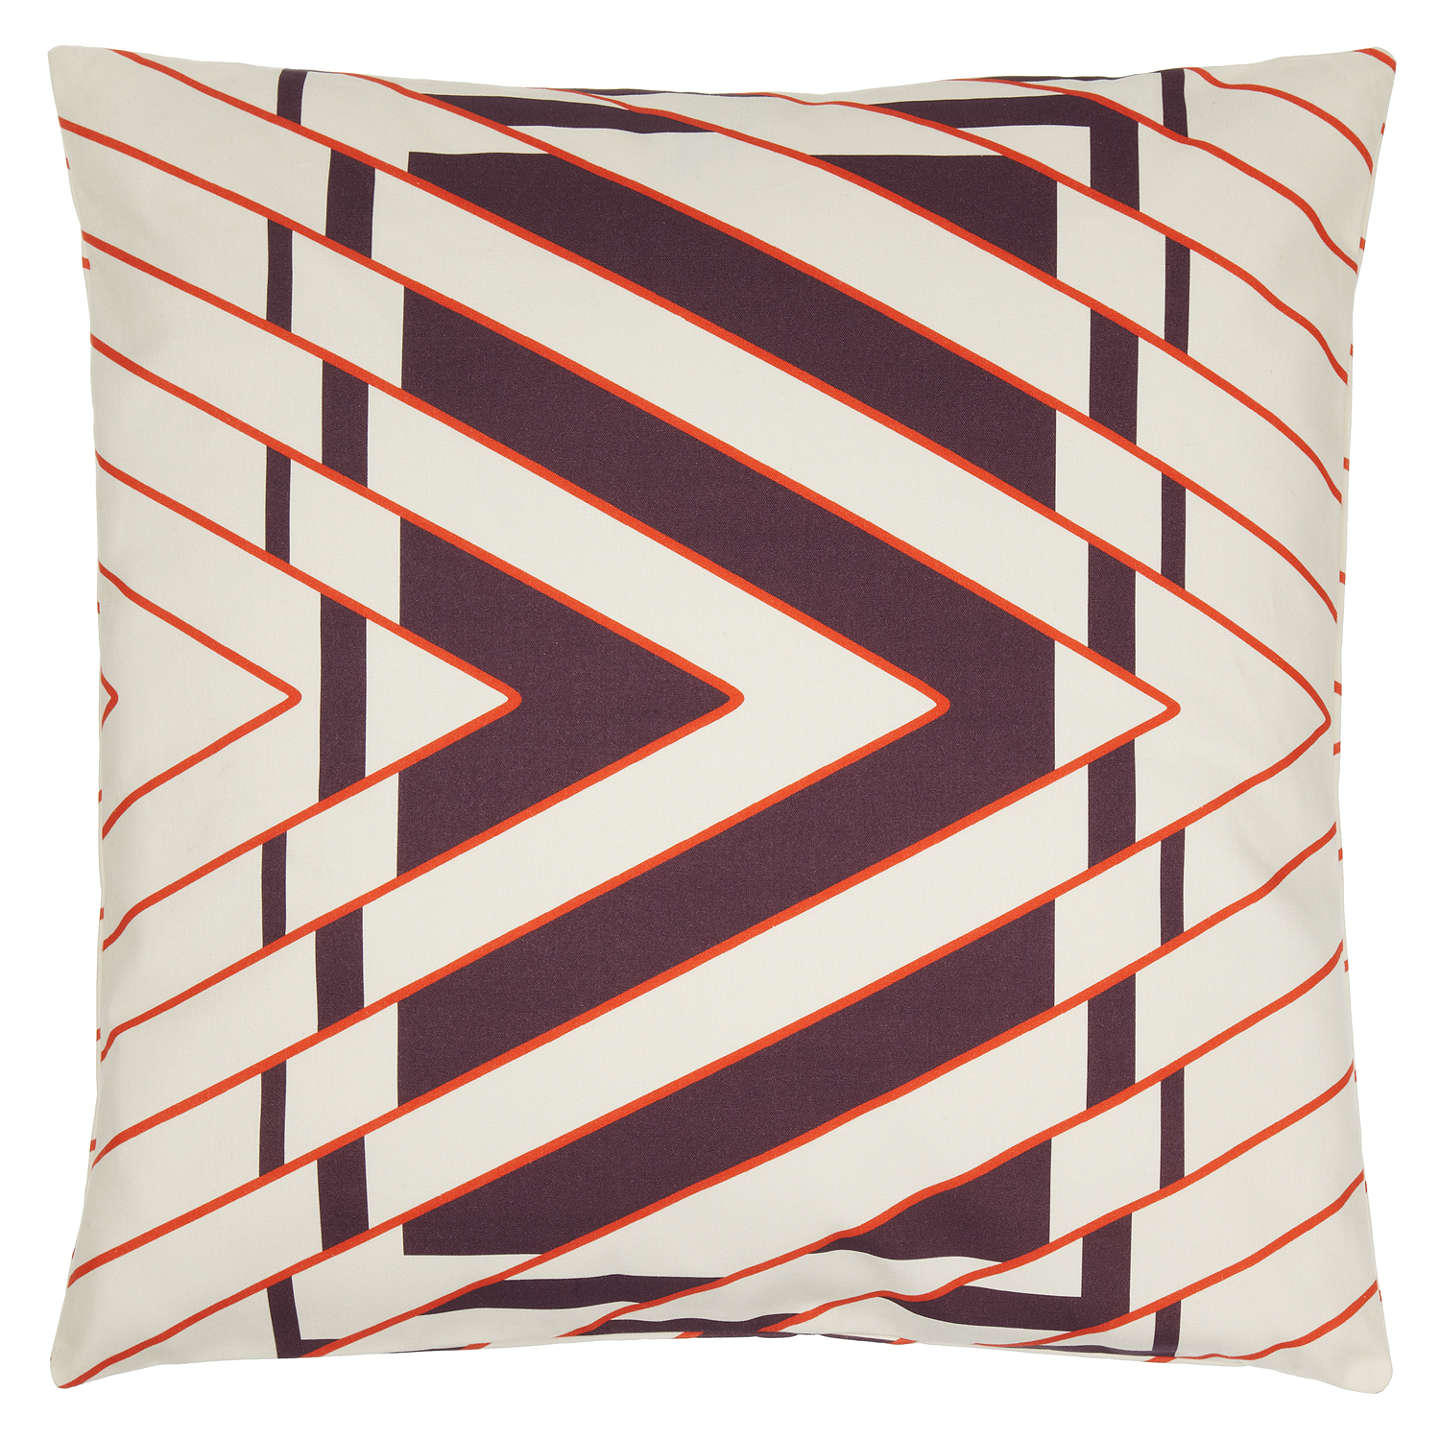 BuyLucienne Day for John Lewis Panama Cushion, Damson Online at johnlewis.com